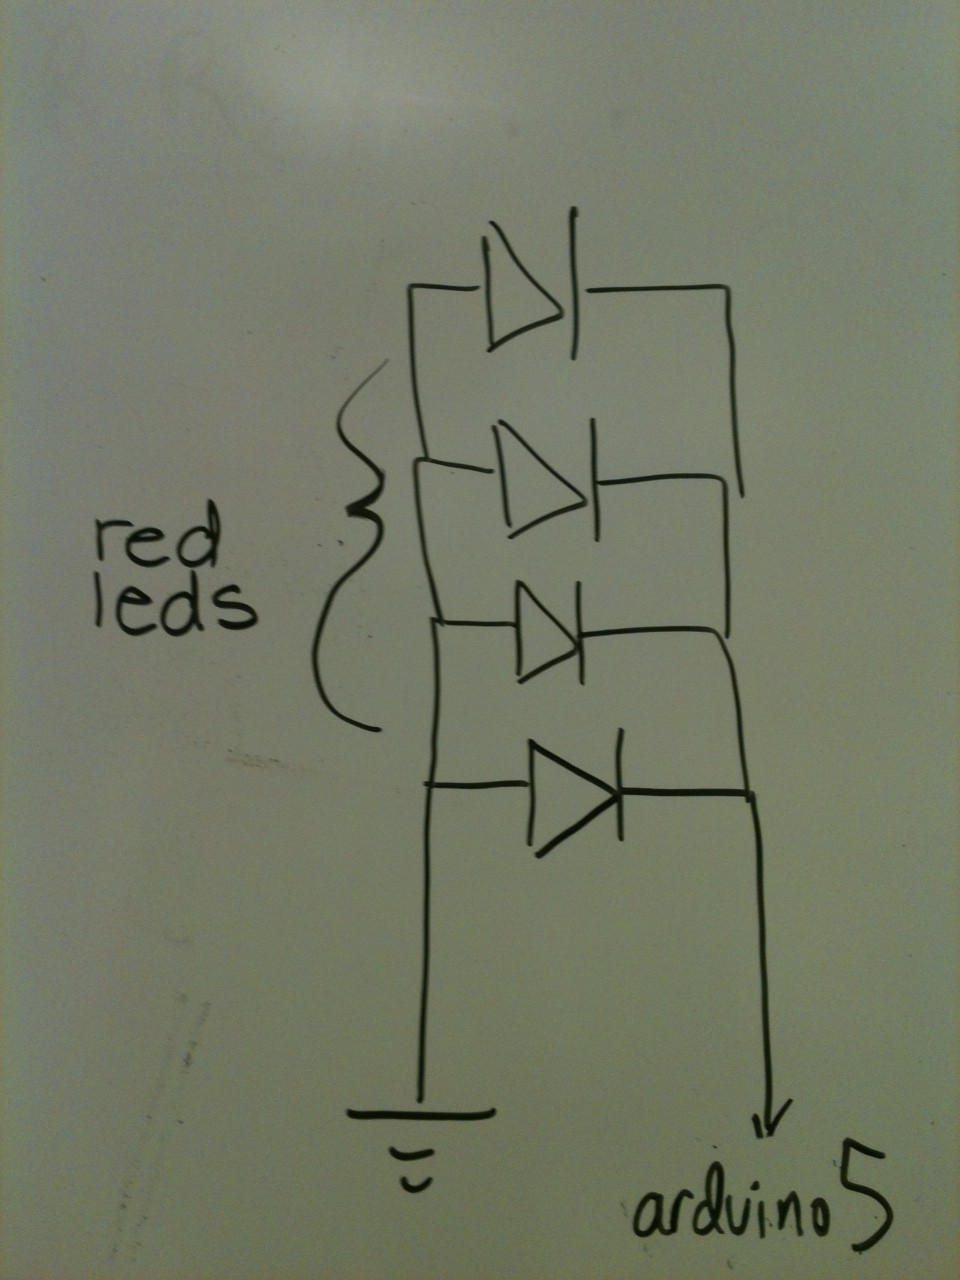 Arduino Circuit for Port 5: The Red LED array